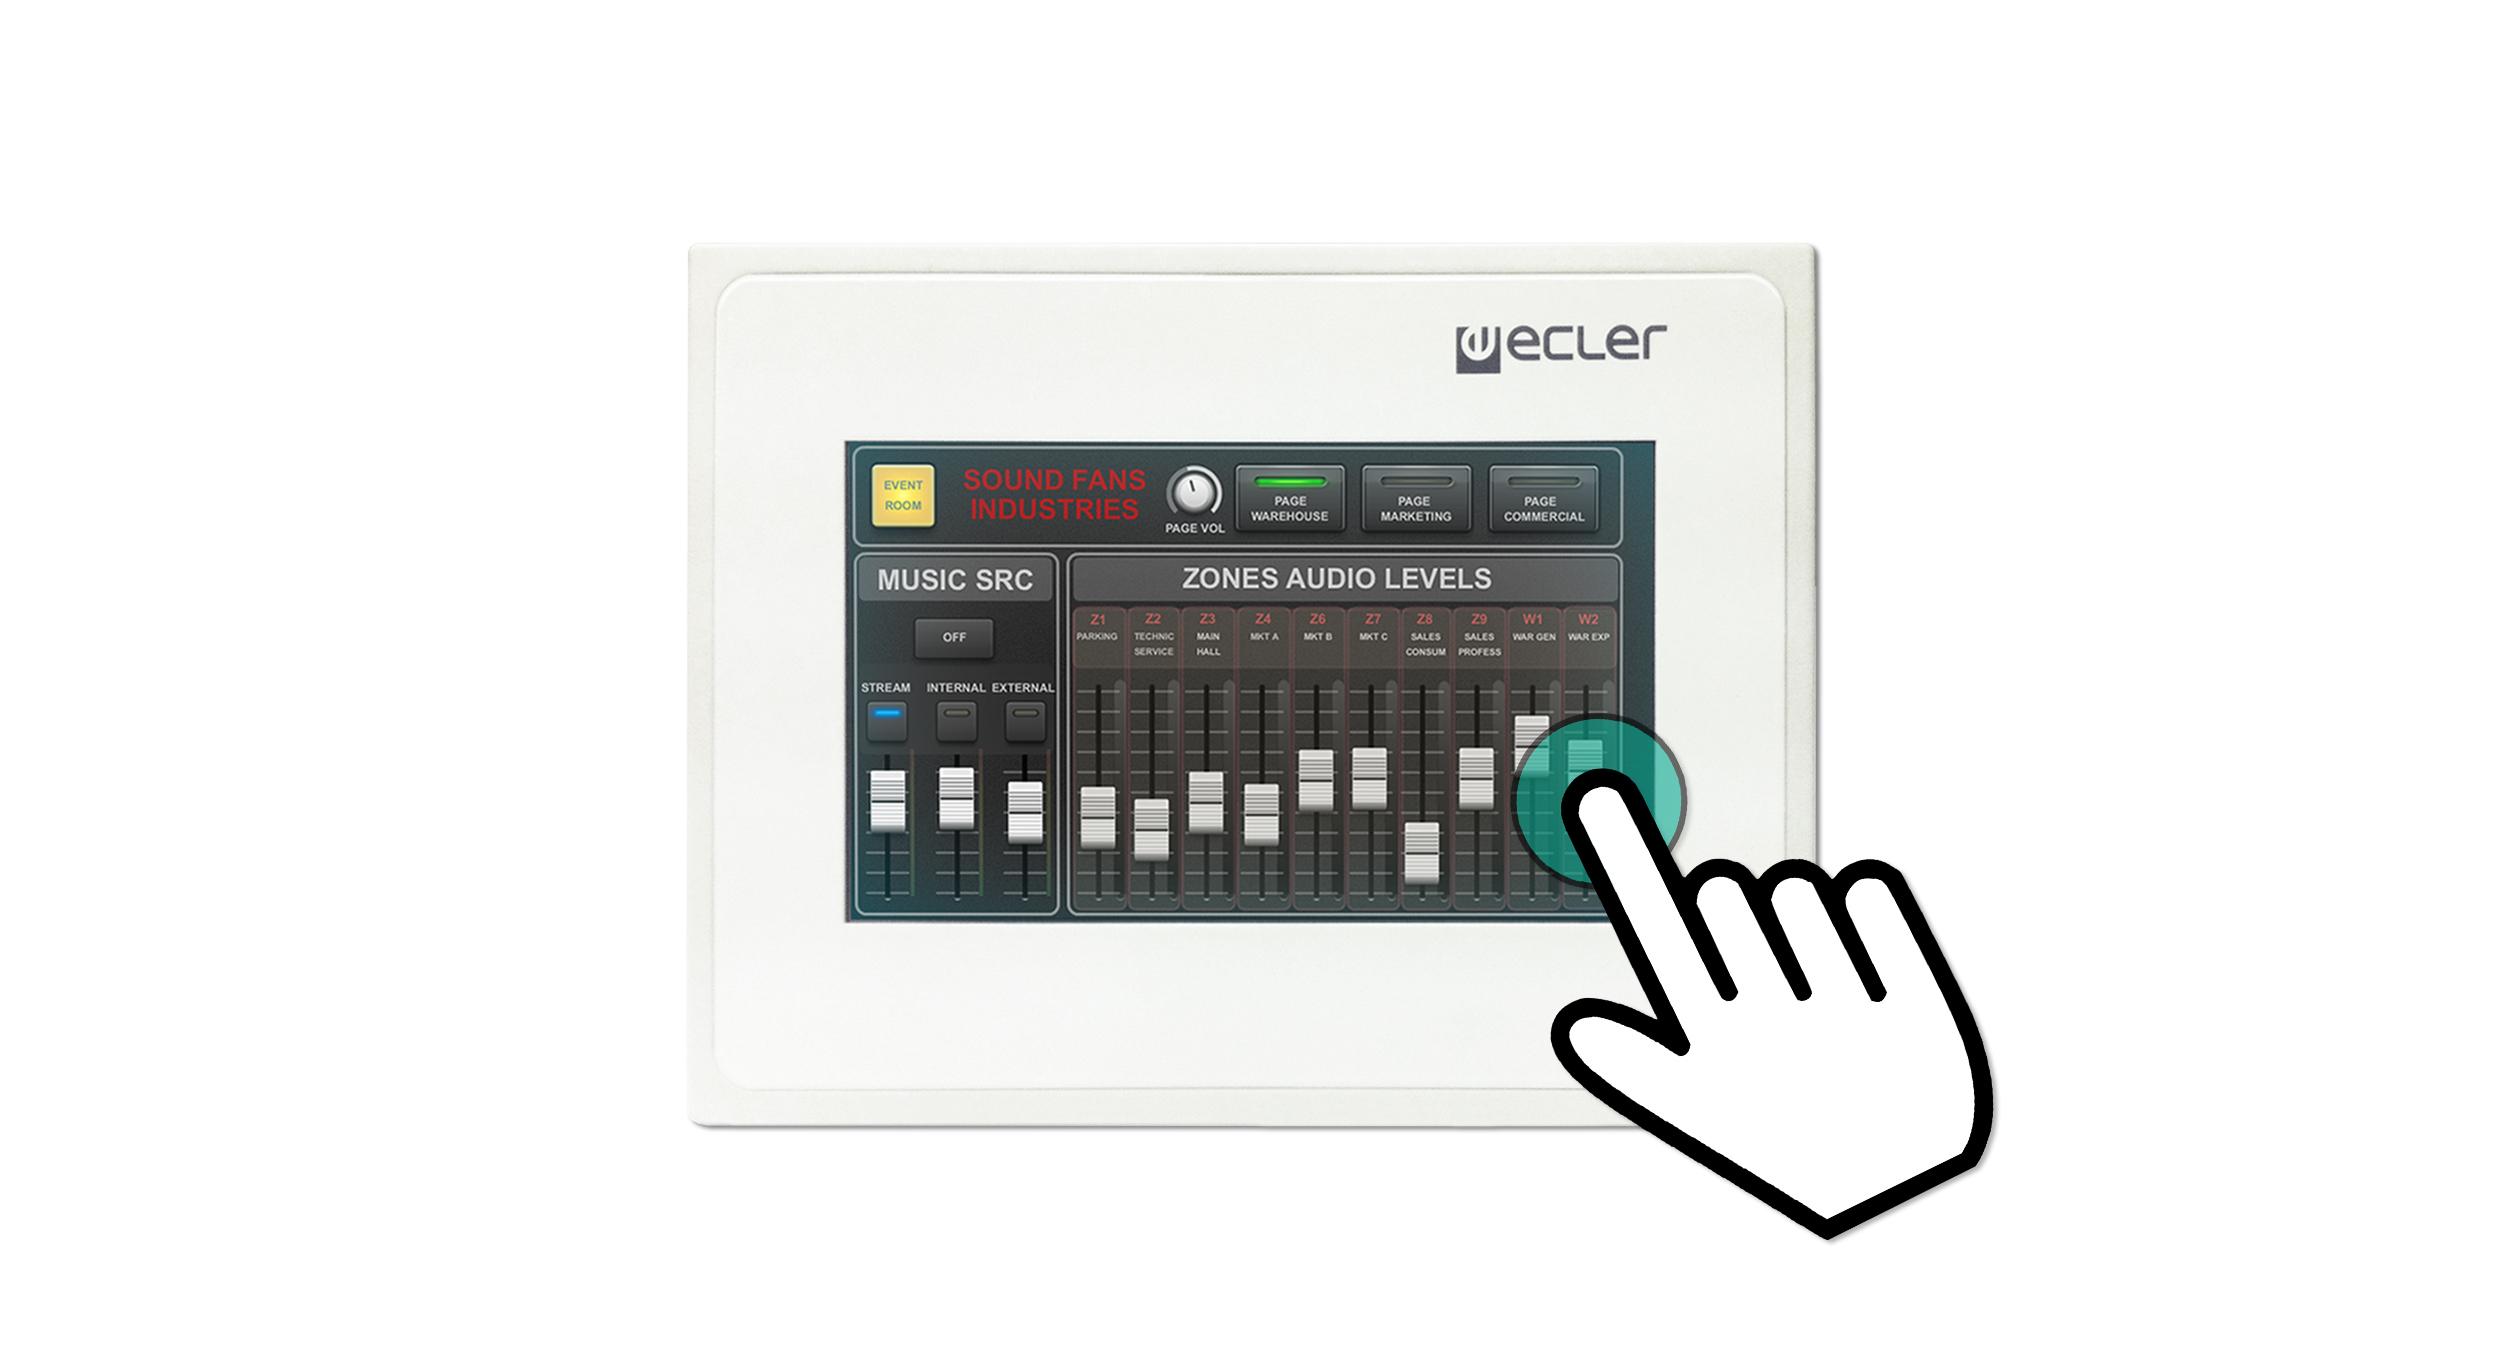 Ecler WPmCREEN EclerNet Touch-screen wall panel